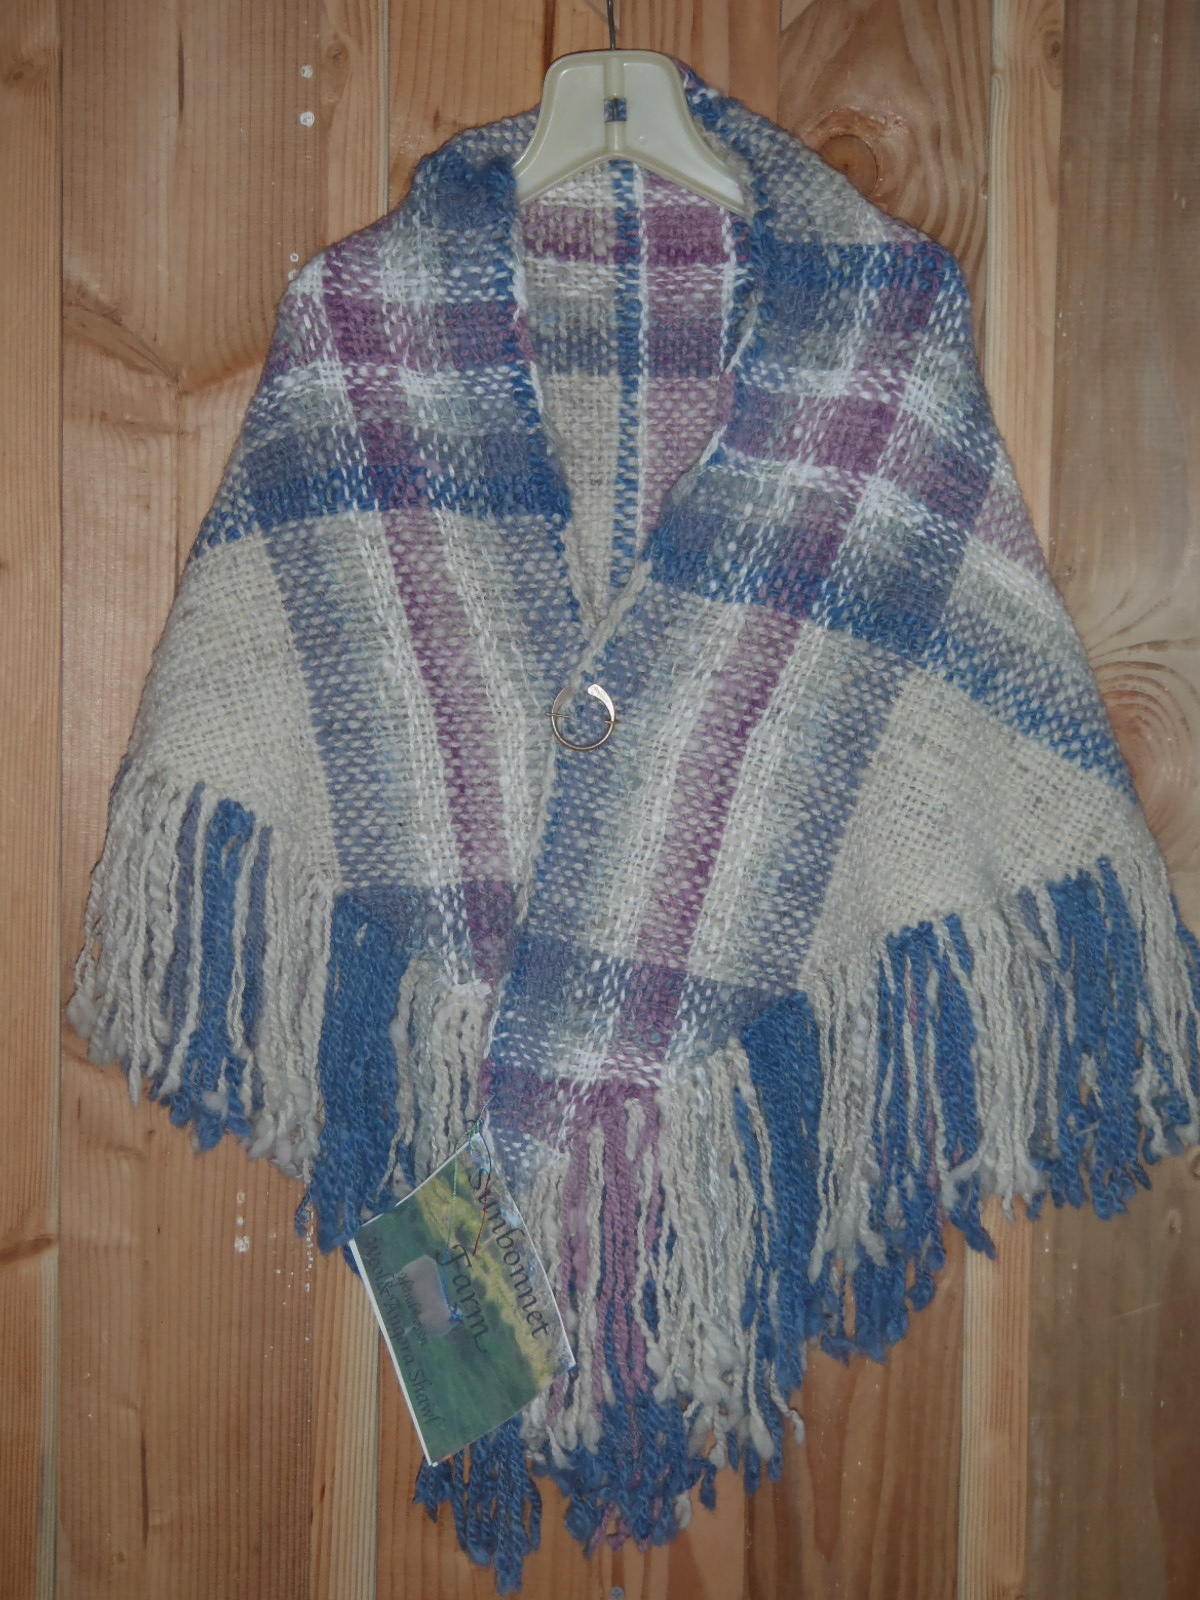 Photo of the blue and purple shawl.